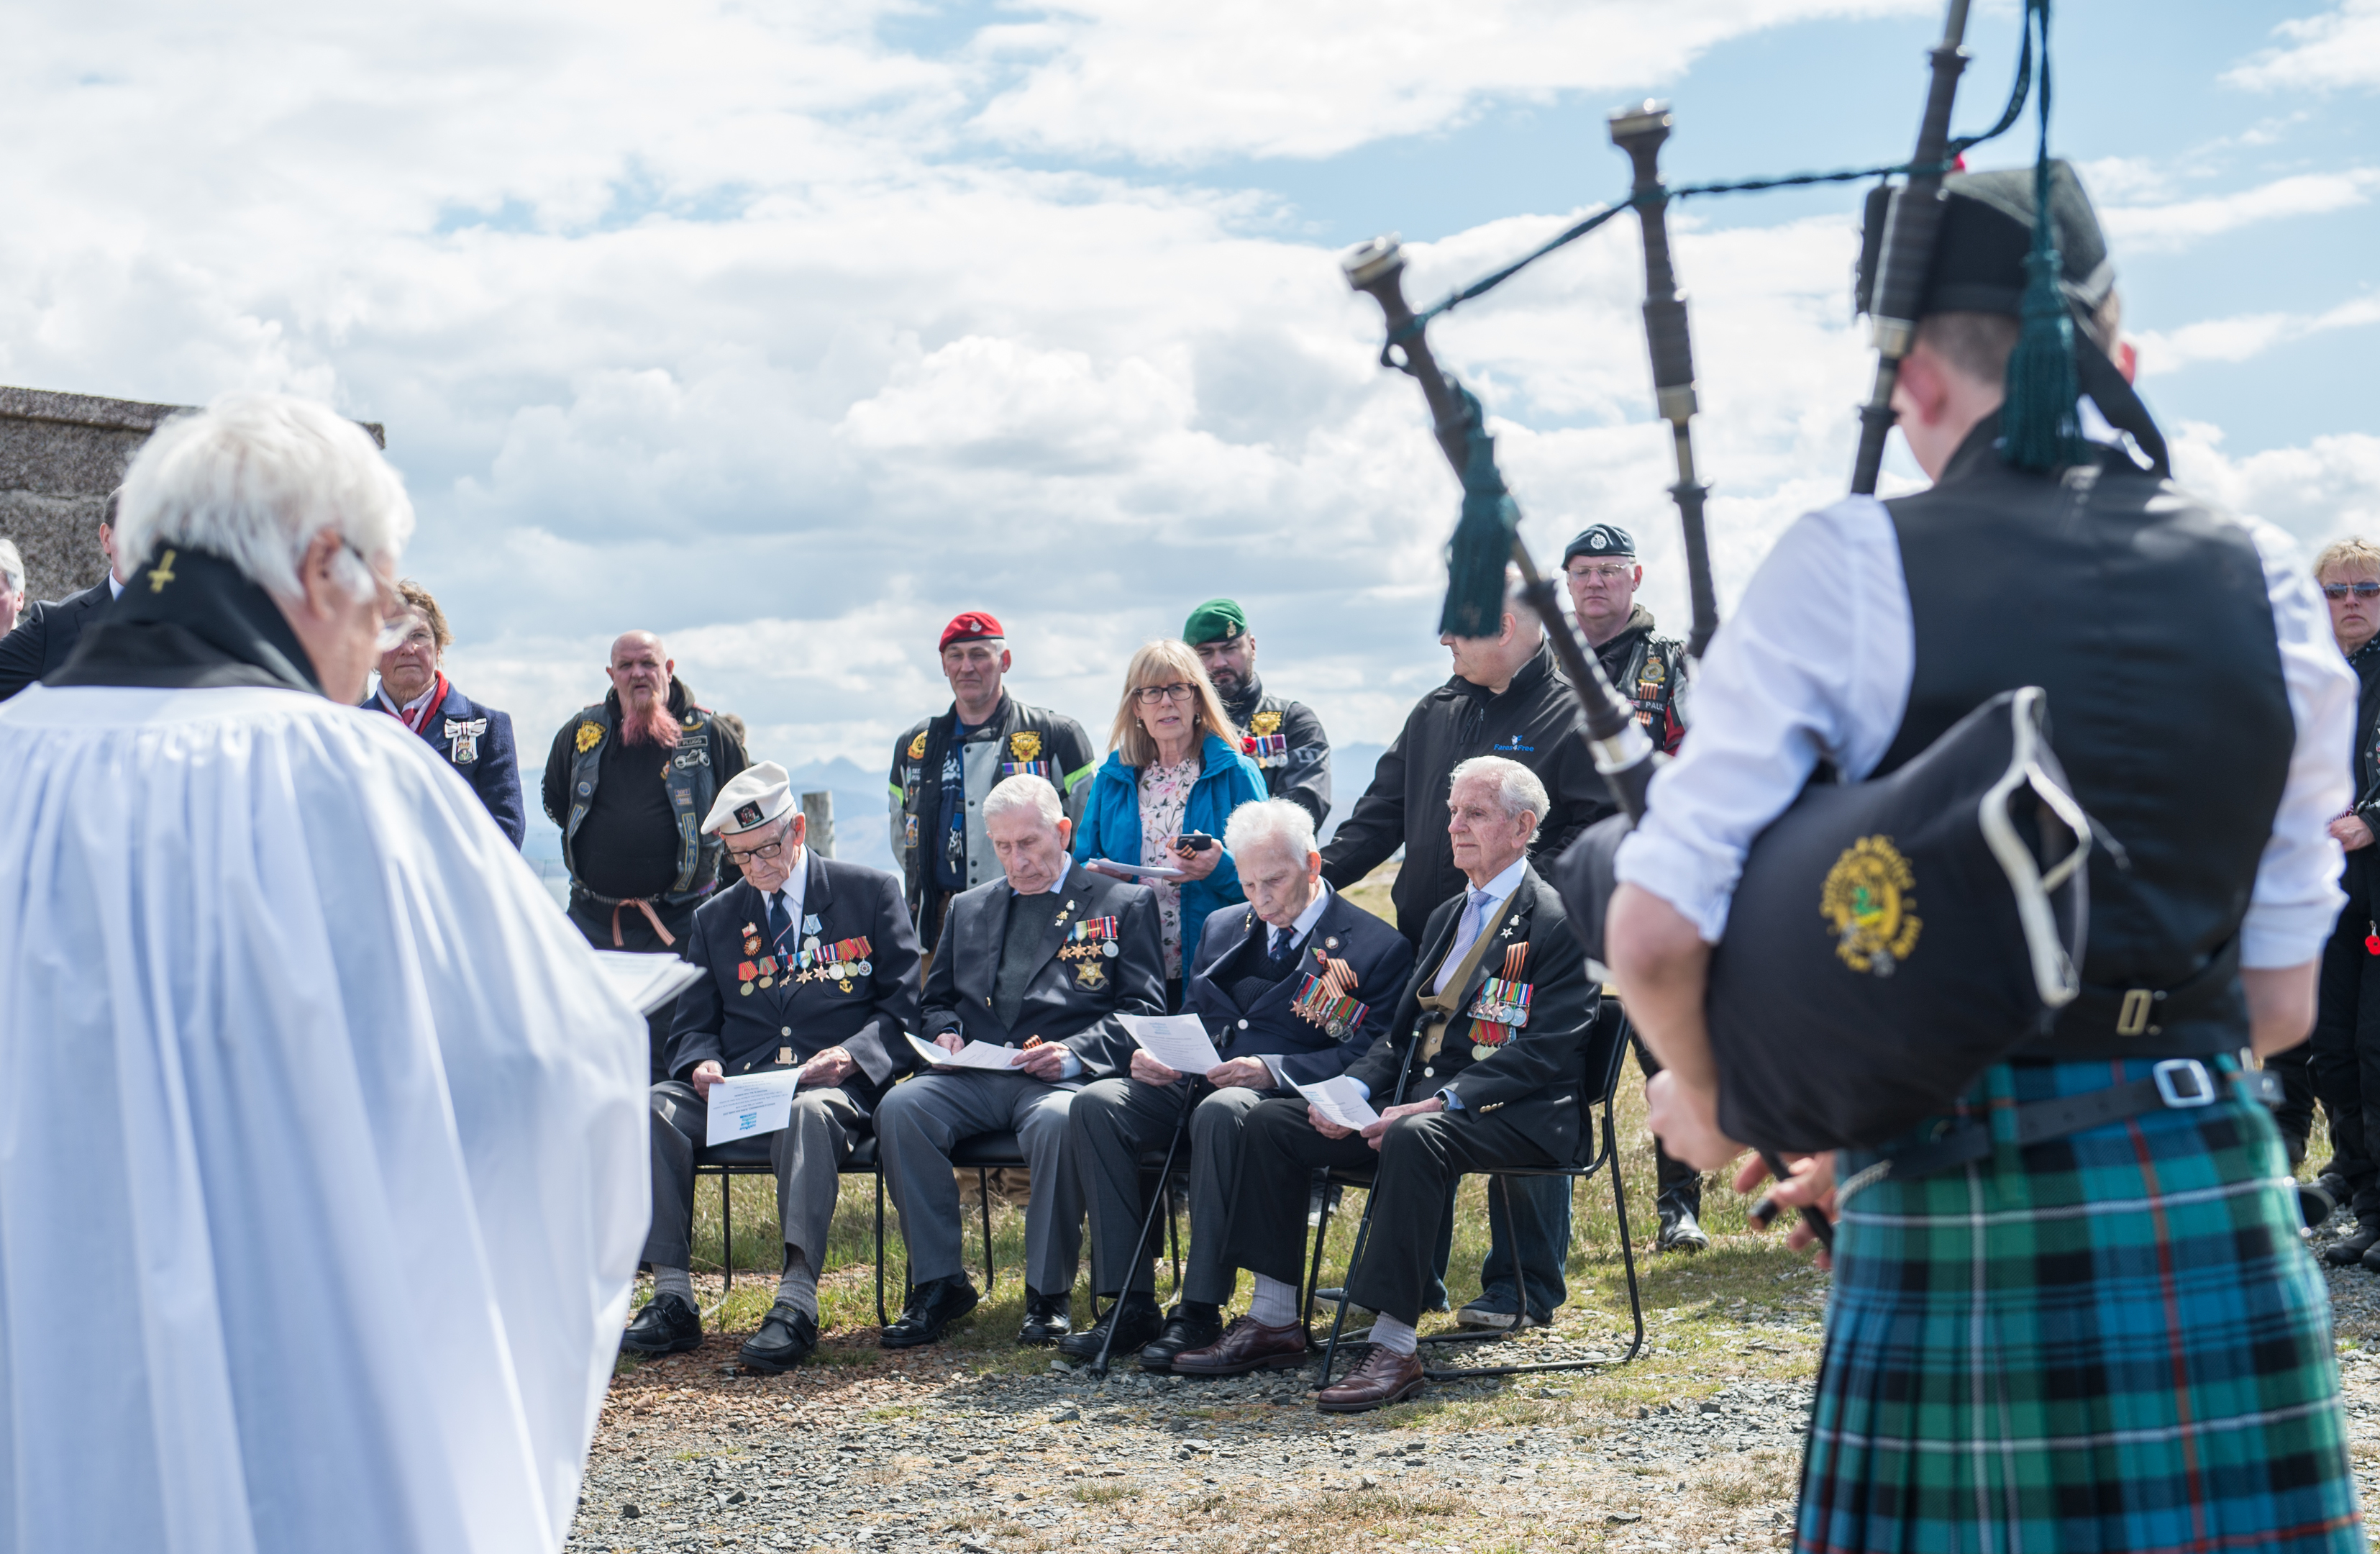 A memorial service is held for four veterans of the Arctic Convoys held in Loch Ewe, Wester Ross